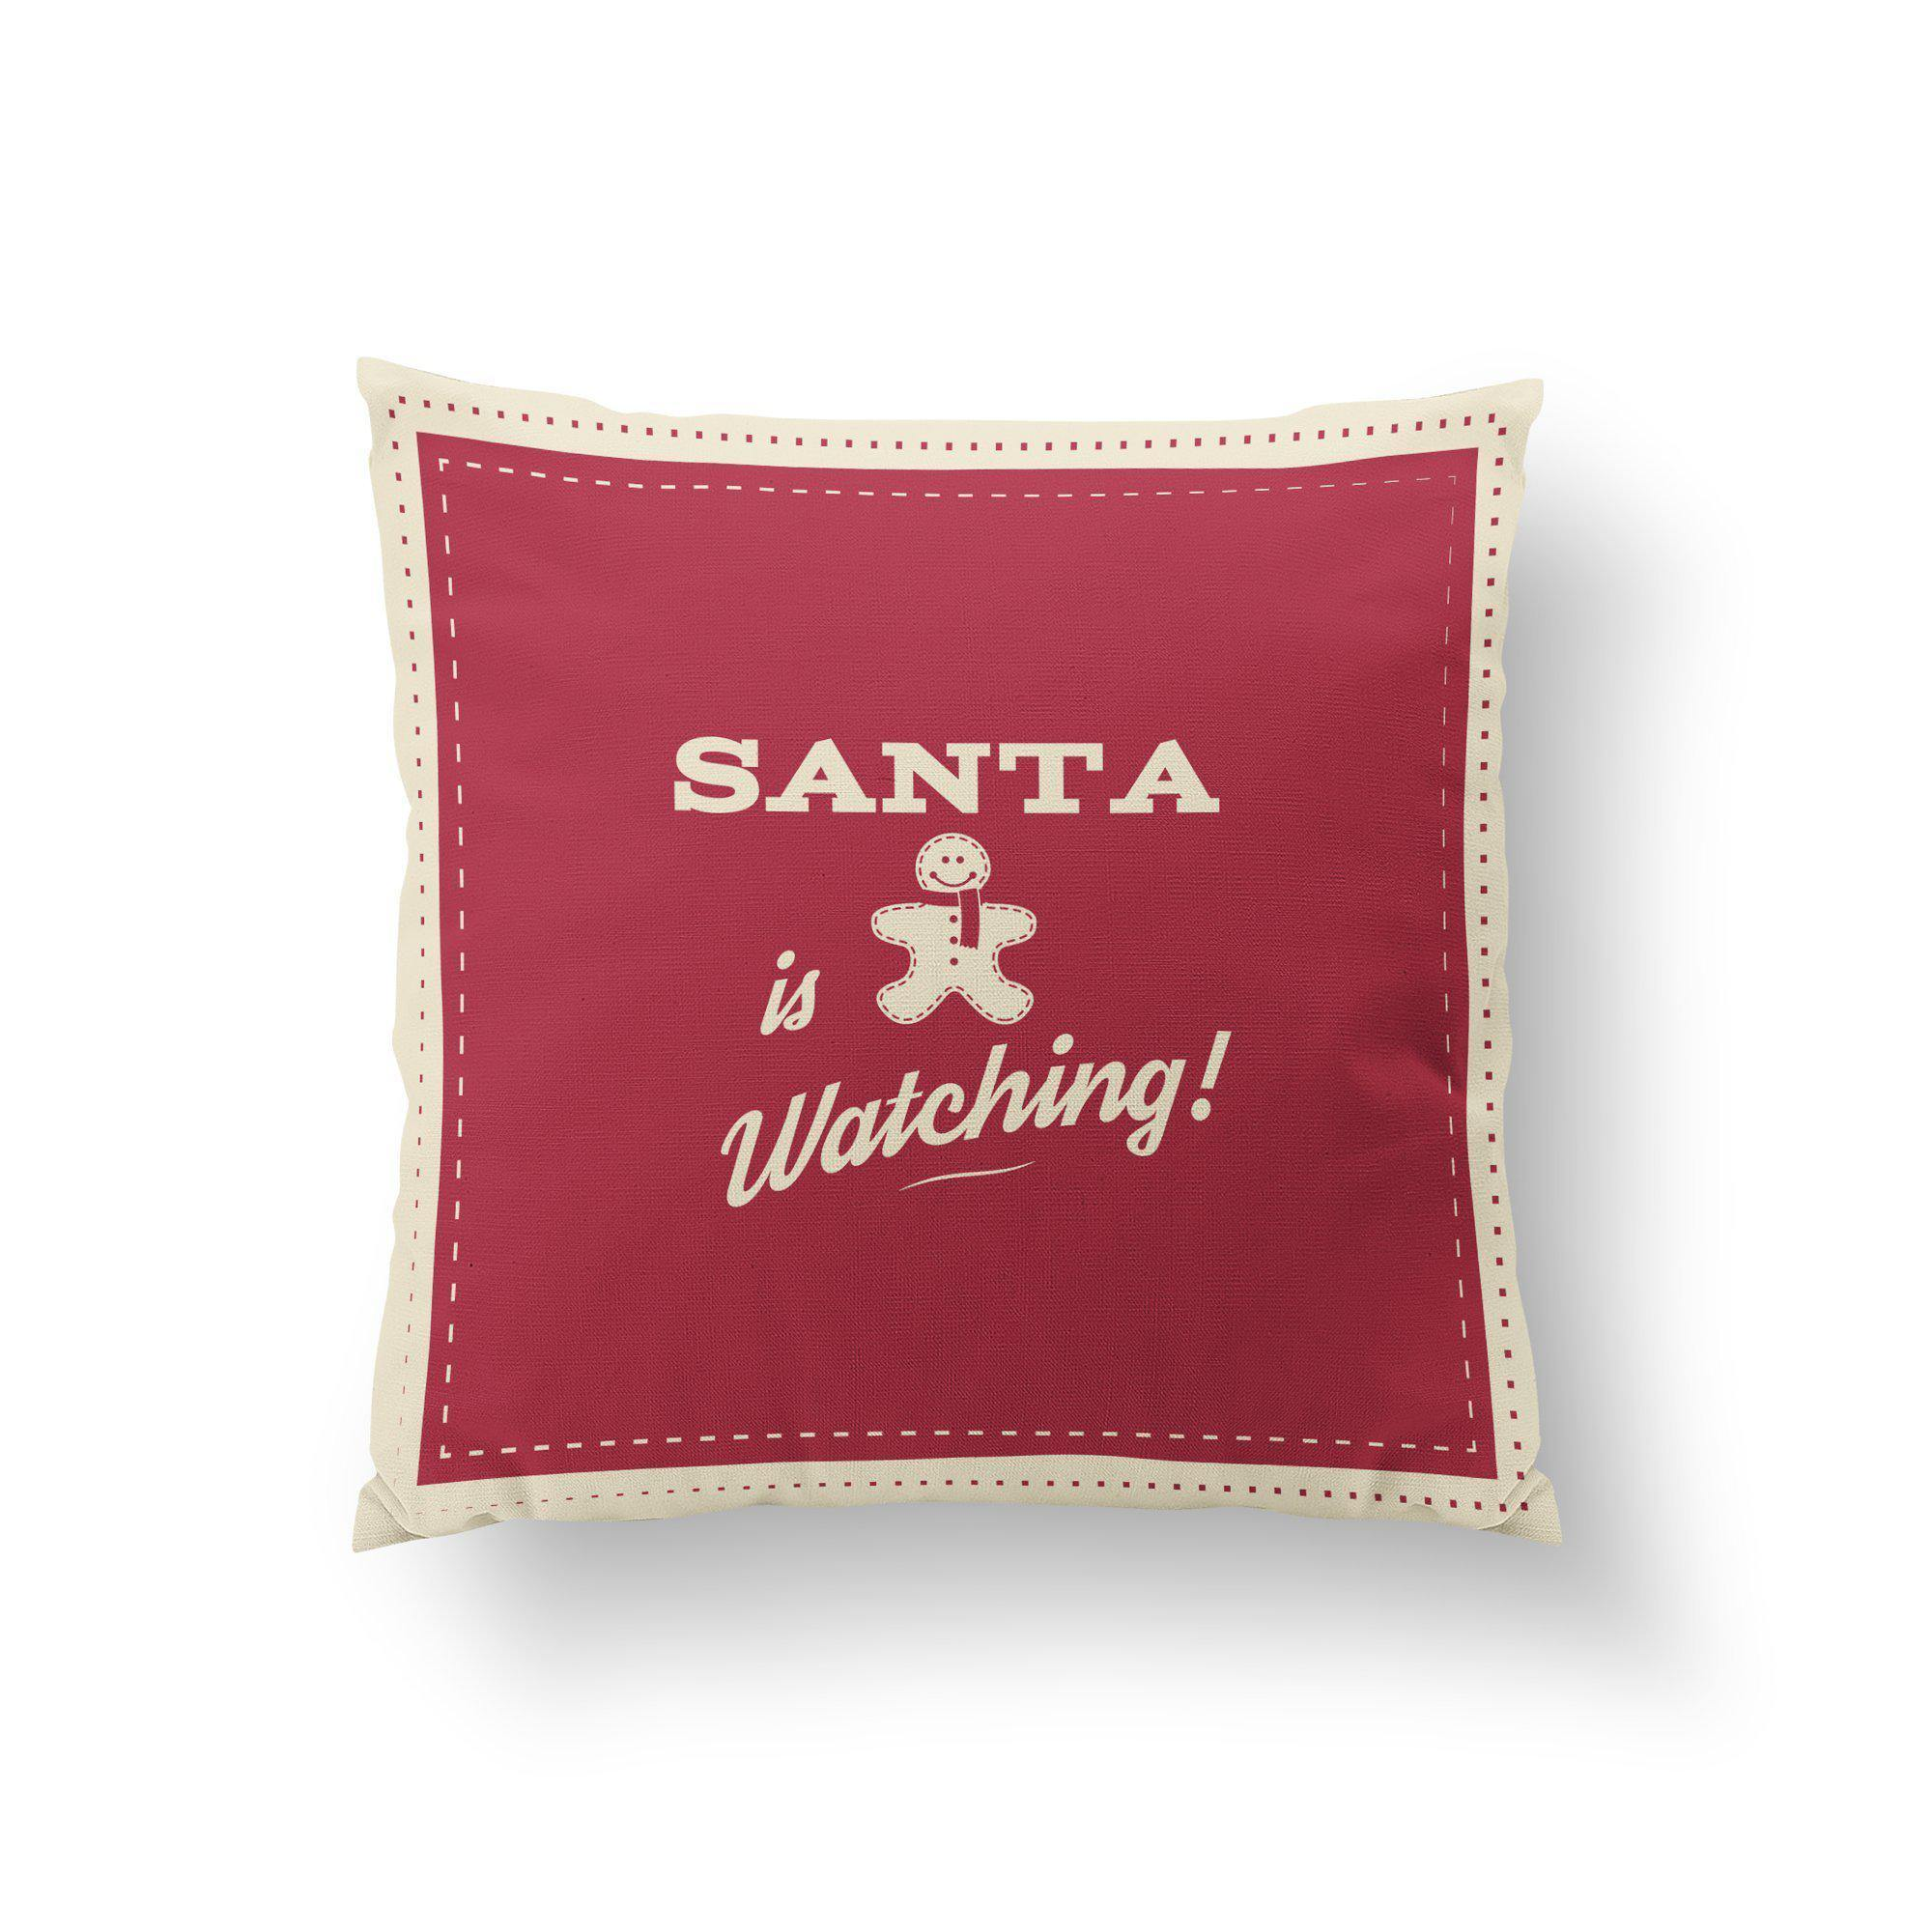 Santa is Watching Christmas Pillow - Pillow Covers - W.FRANCIS